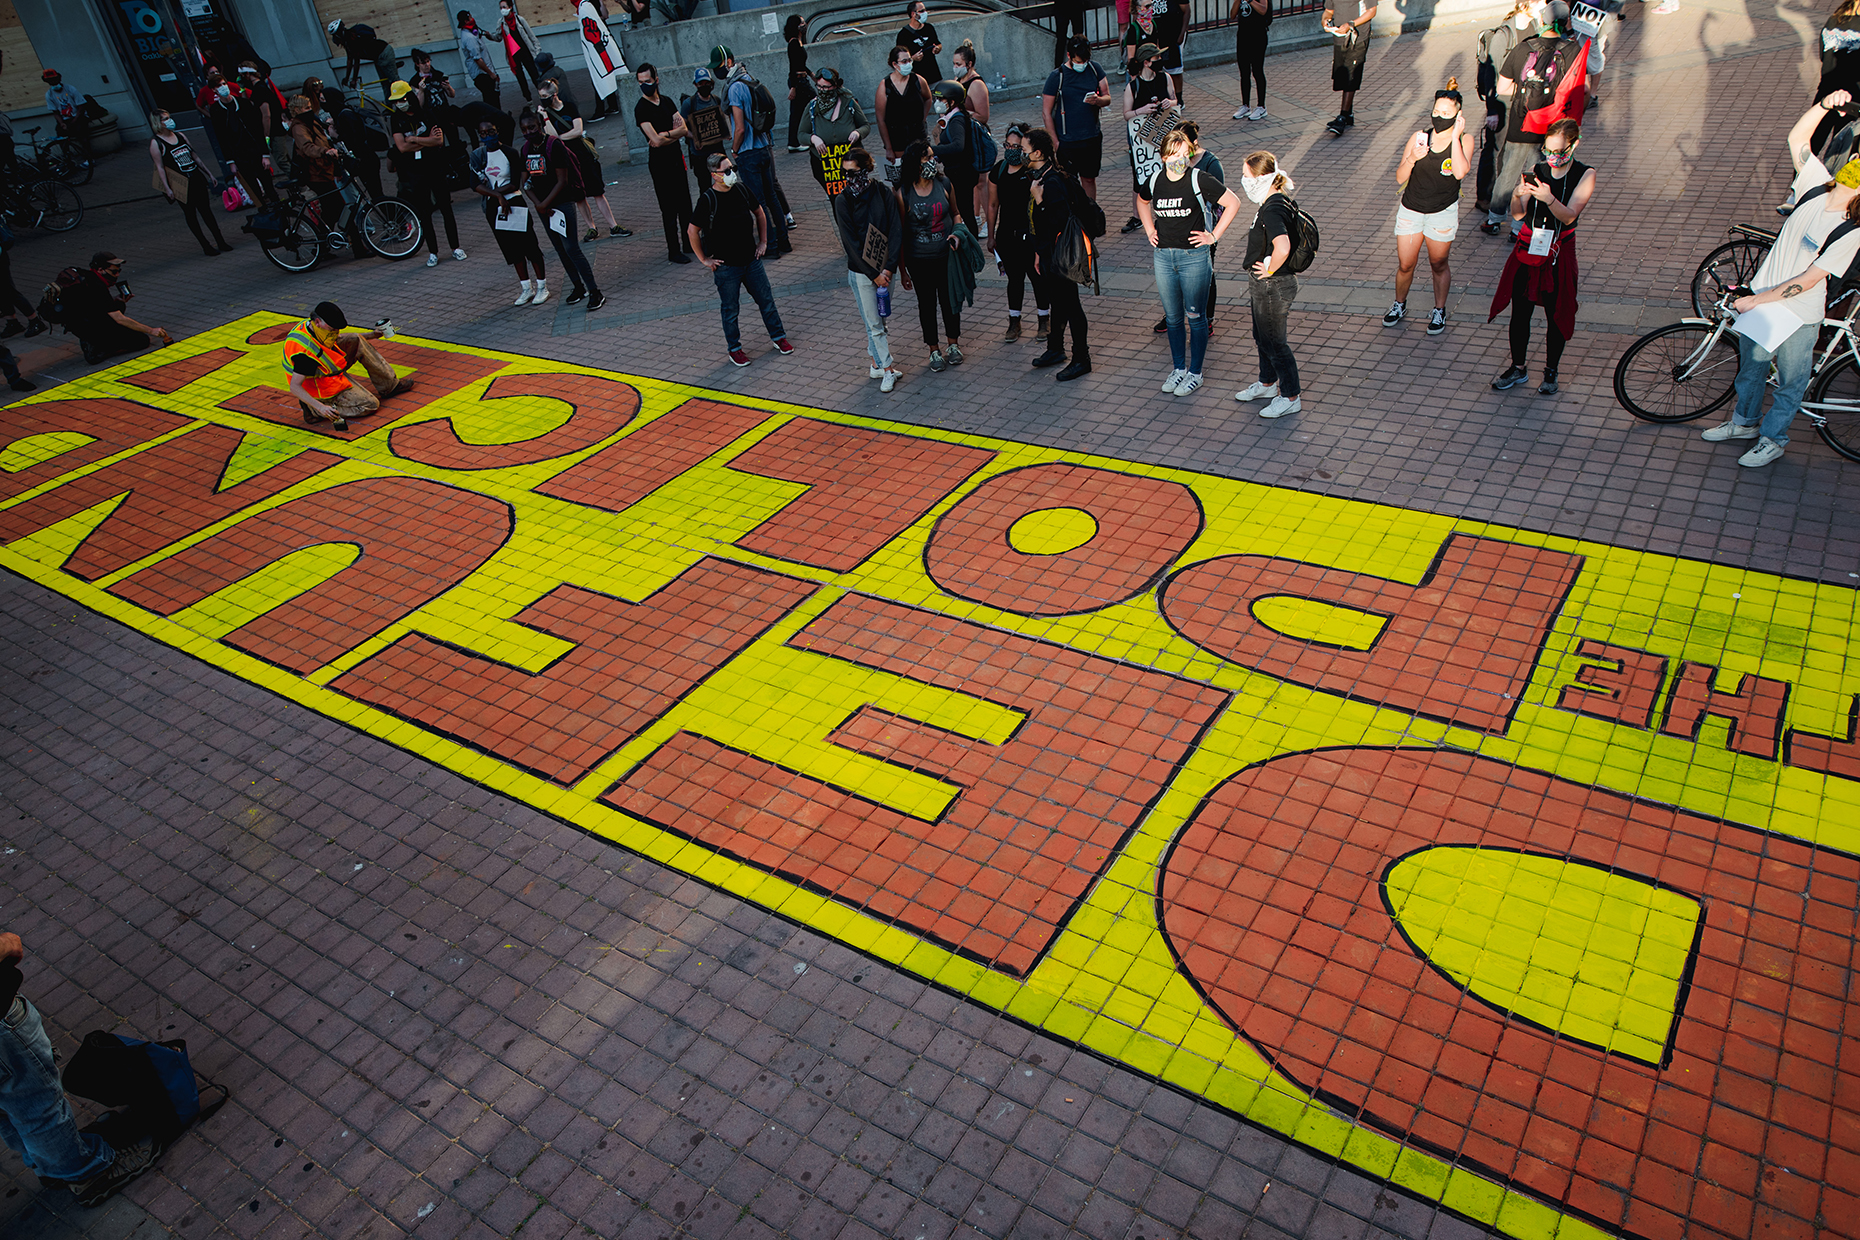 Protestors painting a sign in the street that says 'Defund the police'. Photo by: Survival Media